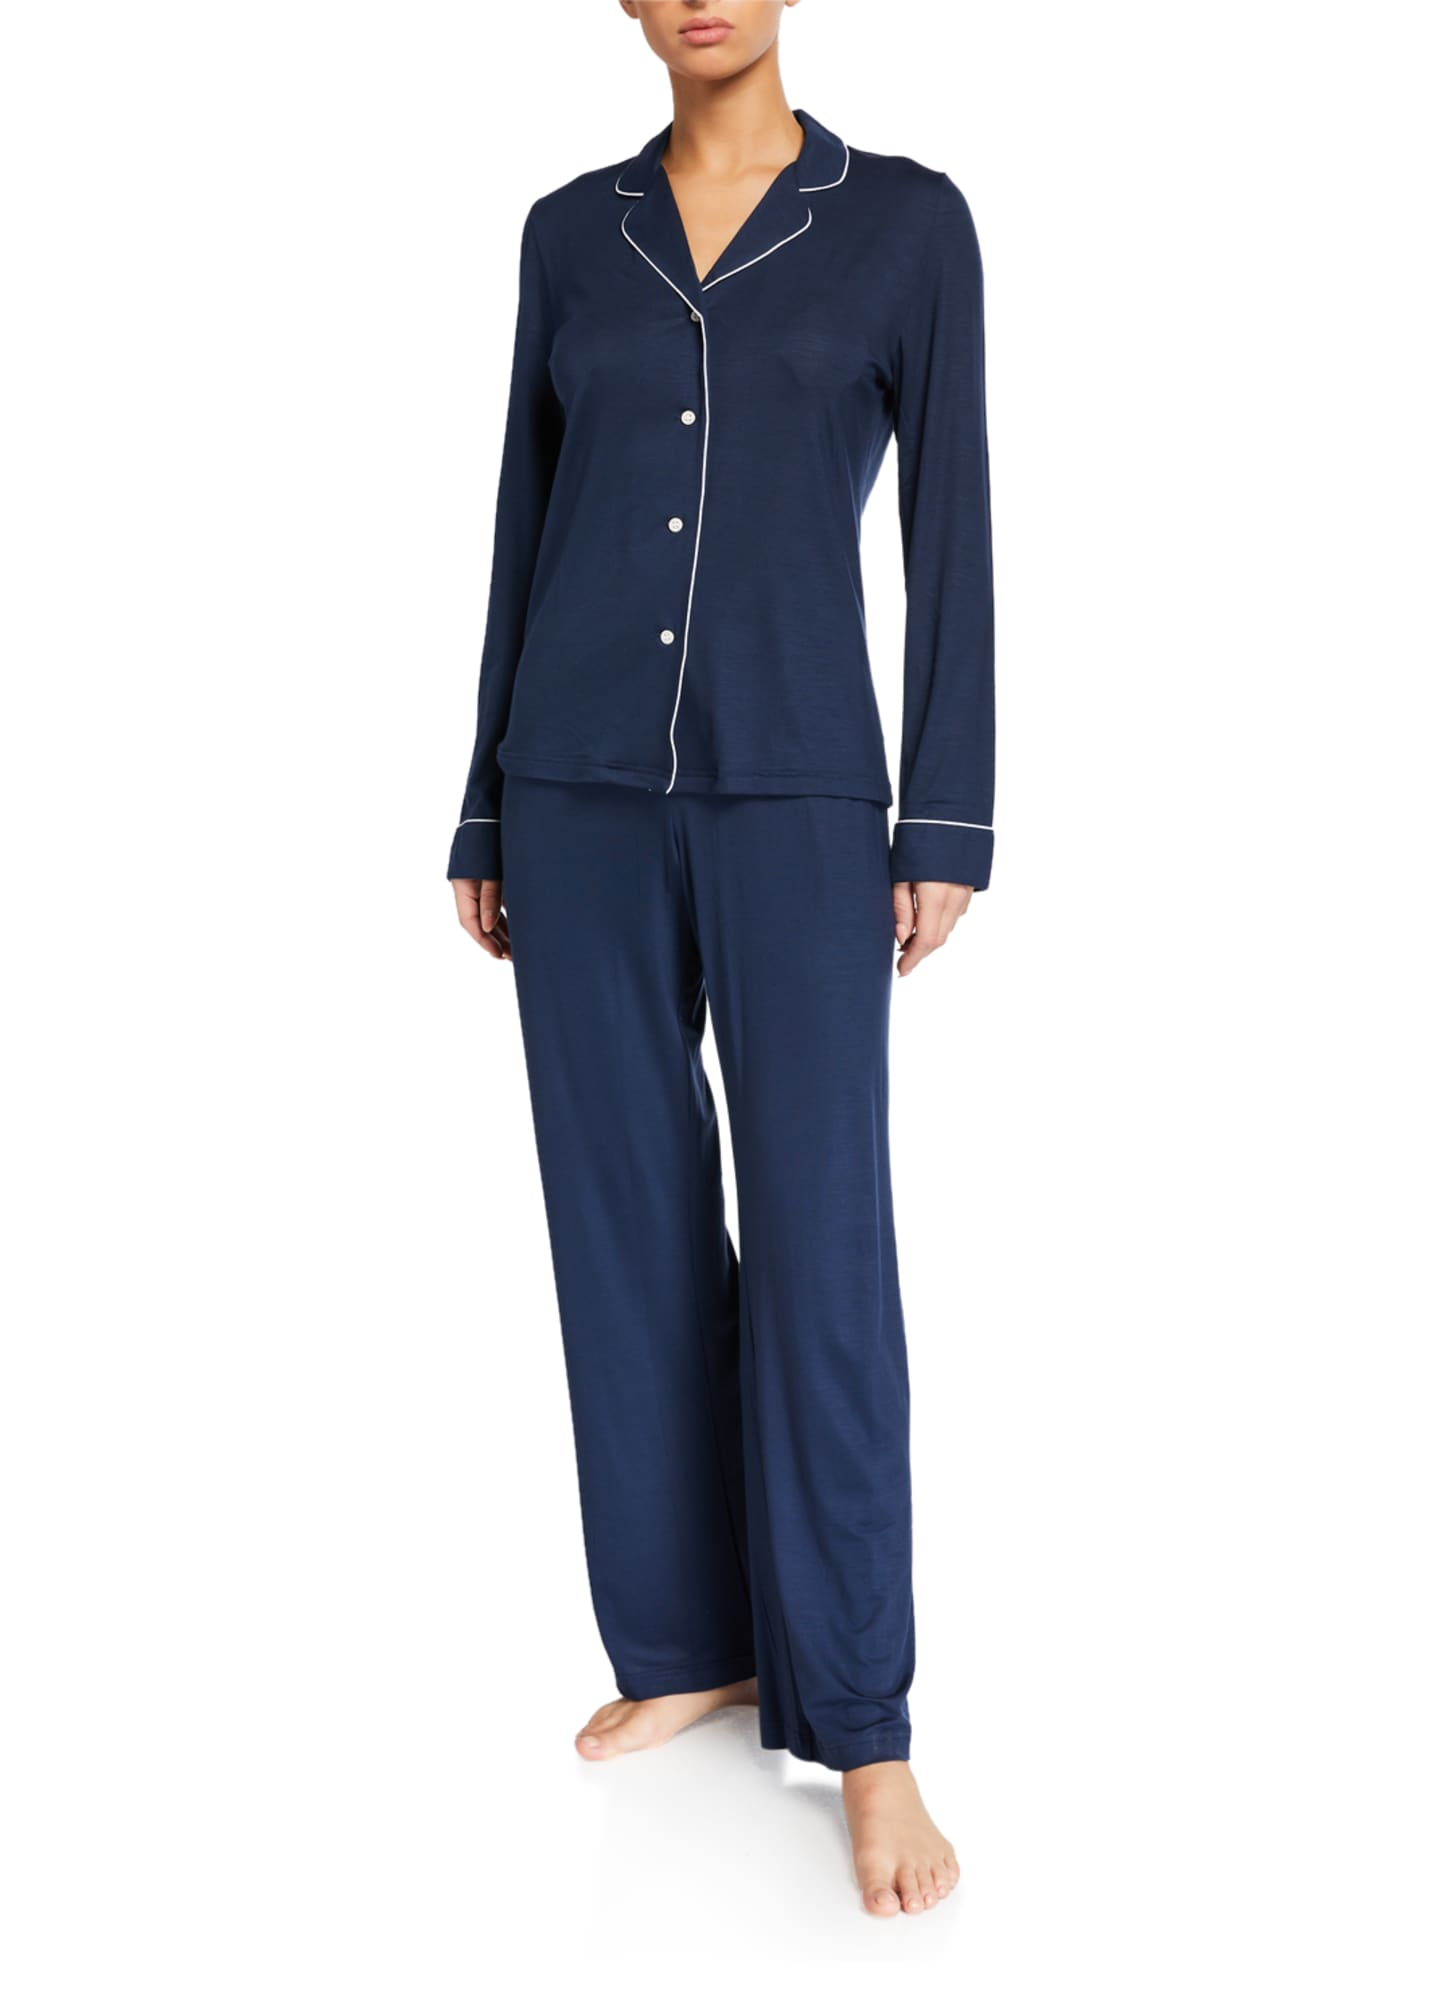 Image 1 of 2: Lara 1 Jersey Pajama Set